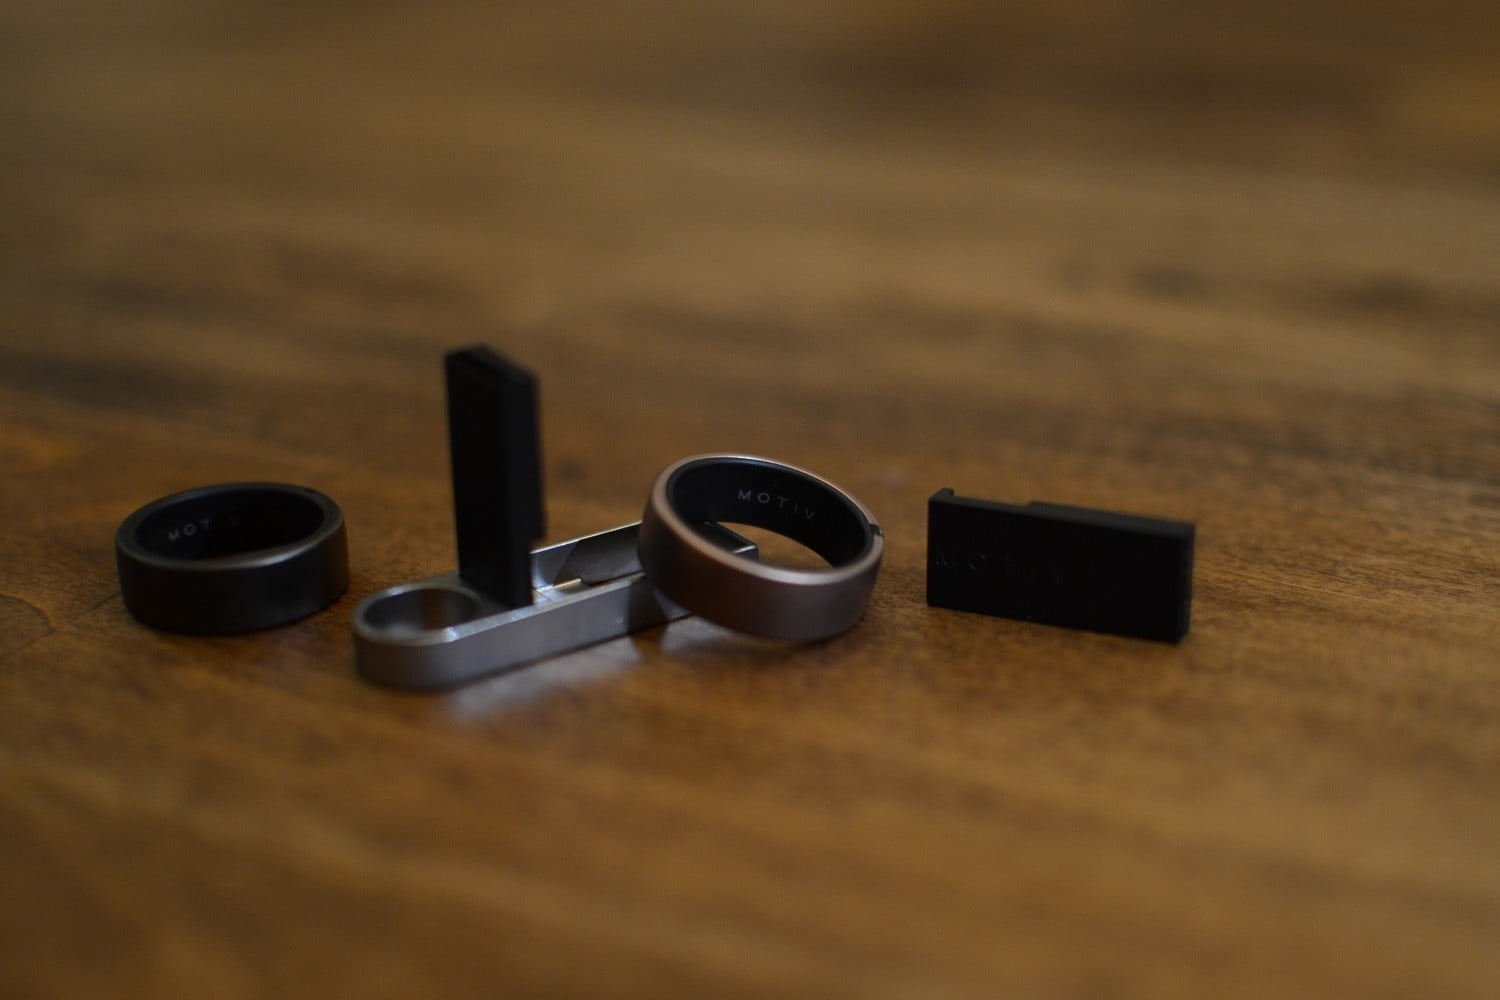 Motiv Smart Ring Can Use Your Walking Pattern to Unlock